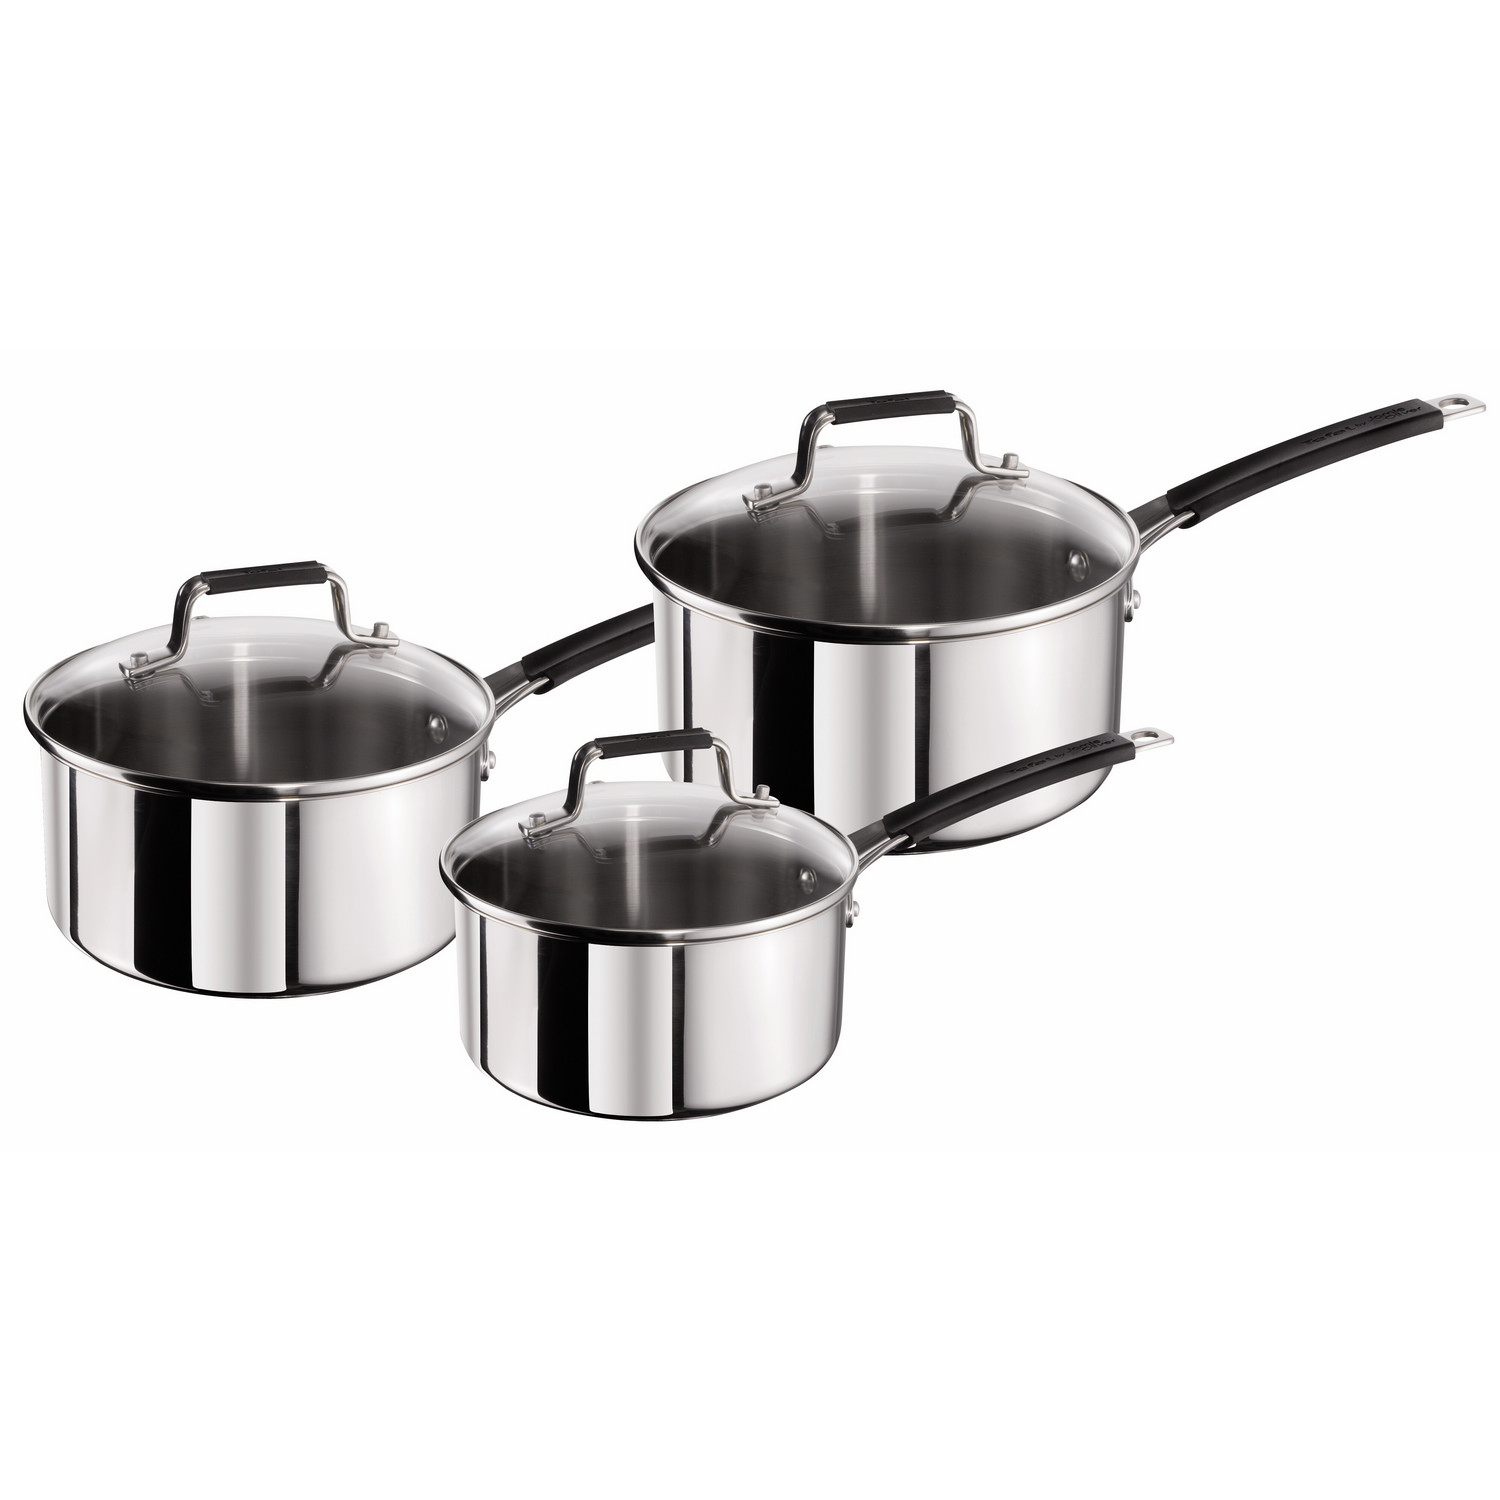 tefal 3 piece jamie oliver stainless steel saucepan cooking pans cookware set ebay. Black Bedroom Furniture Sets. Home Design Ideas